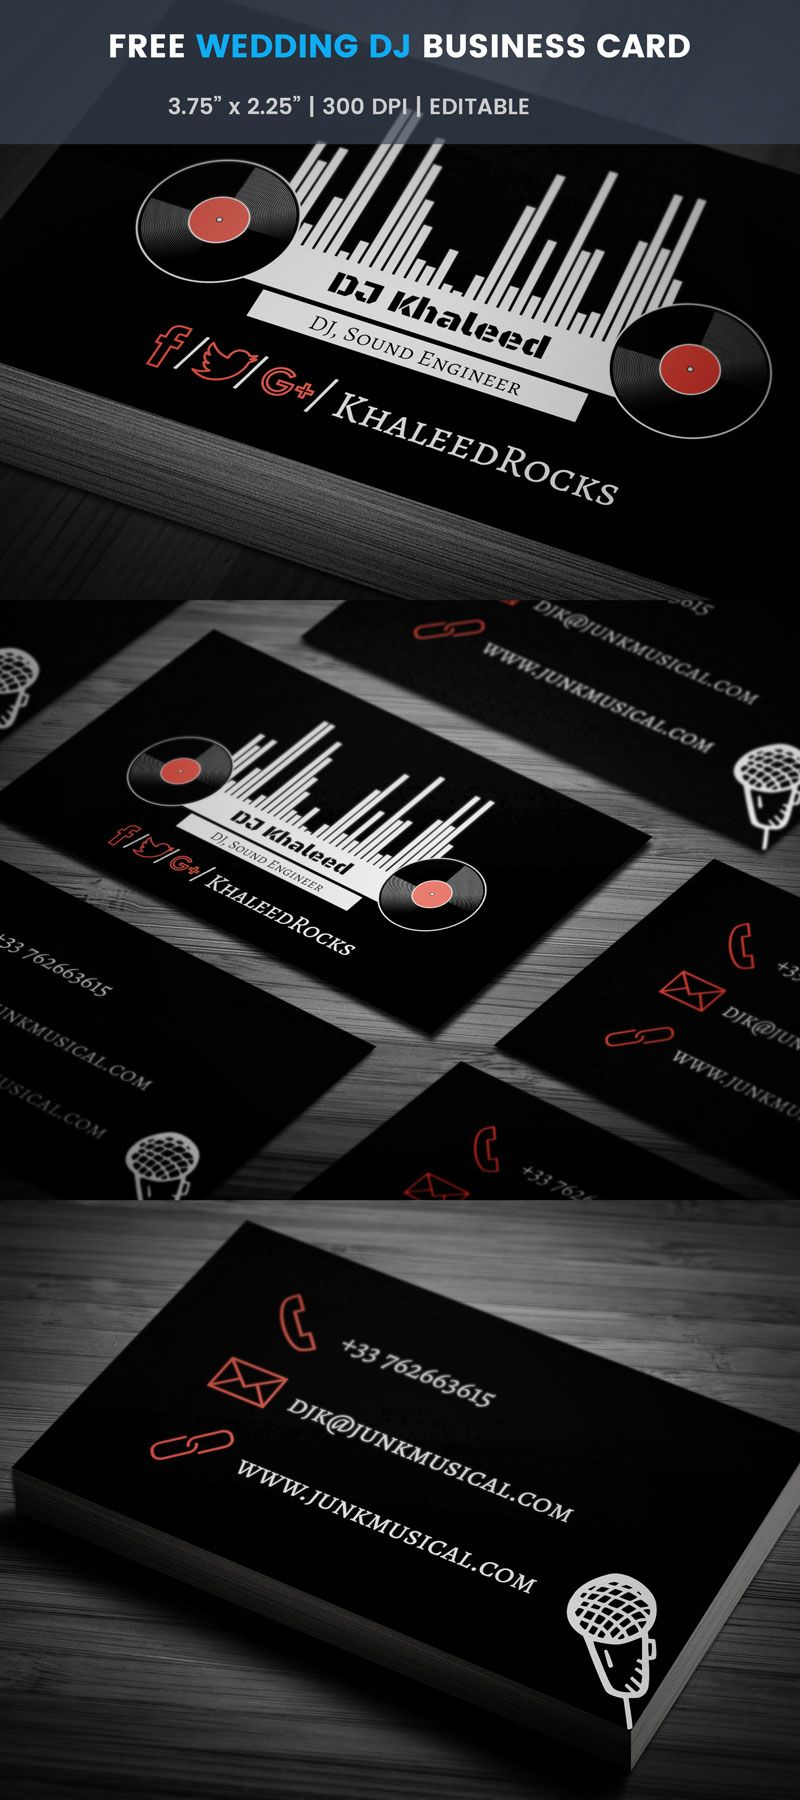 Wedding dj business card full preview free business card wedding dj business card full preview friedricerecipe Choice Image